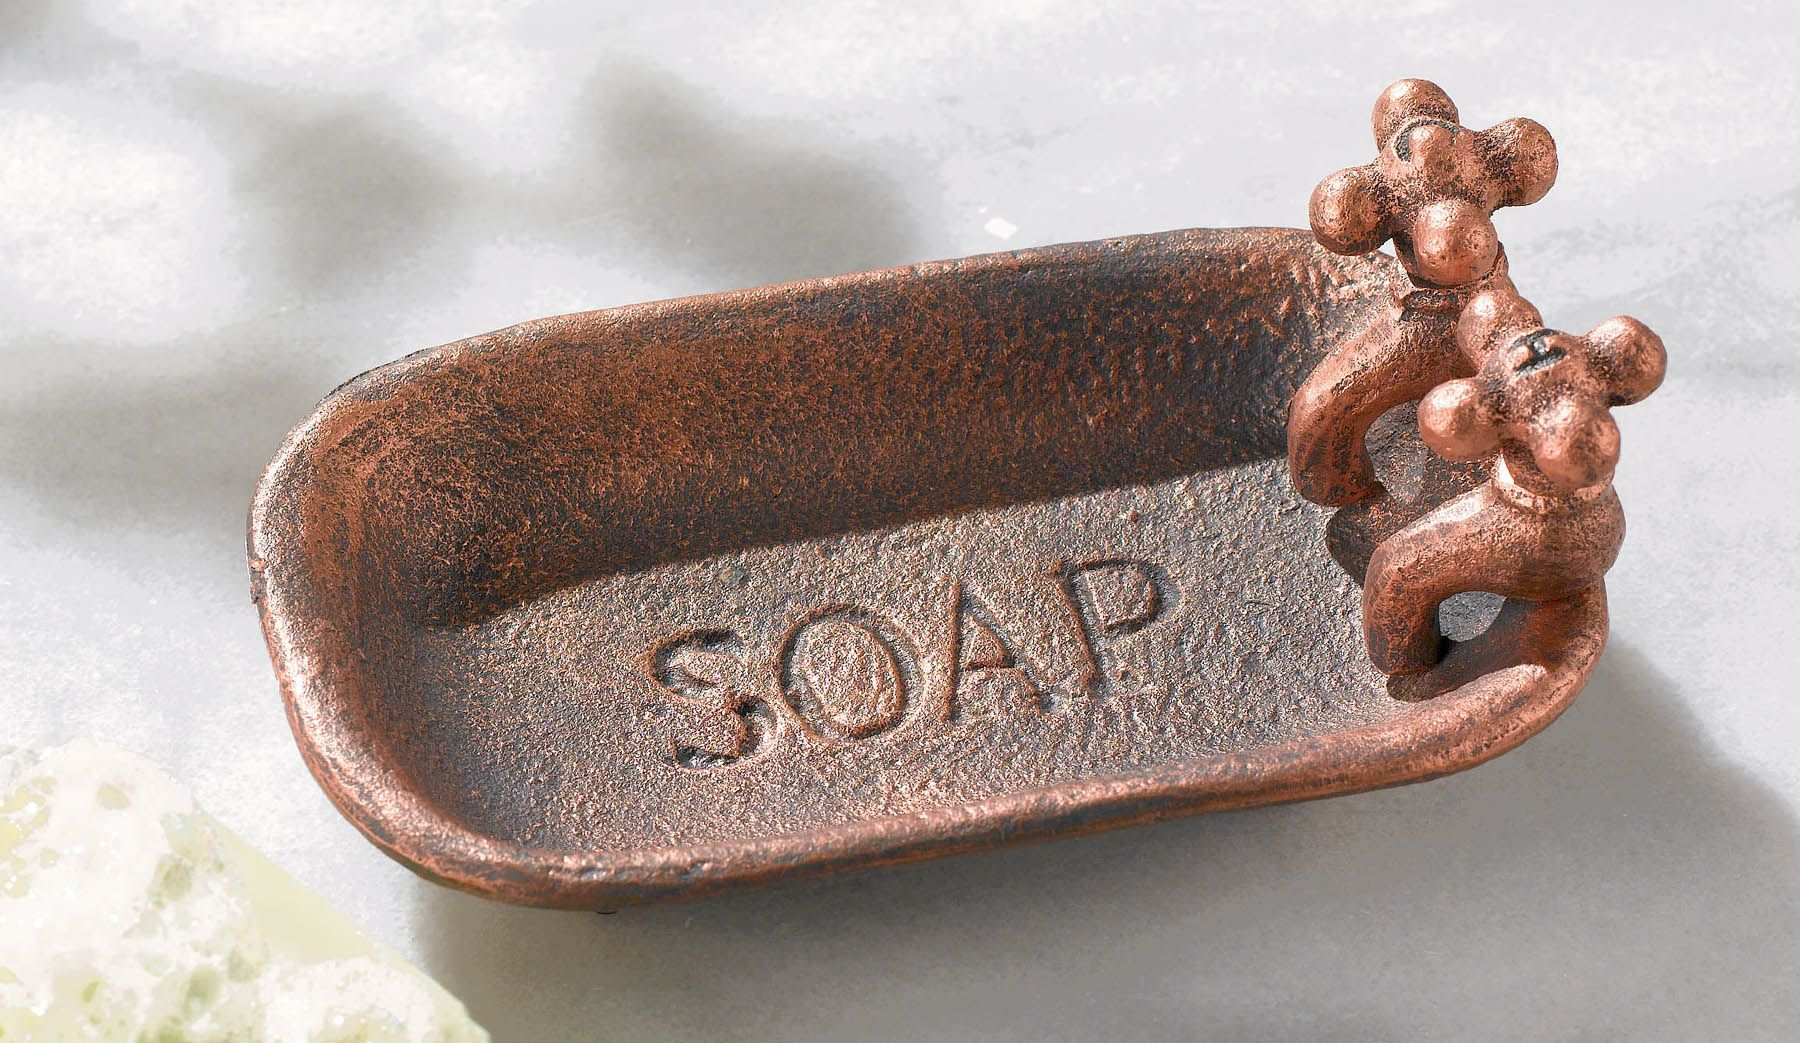 Shabby Metal Tub Hand Soap Dish With A Vintage Retro Look